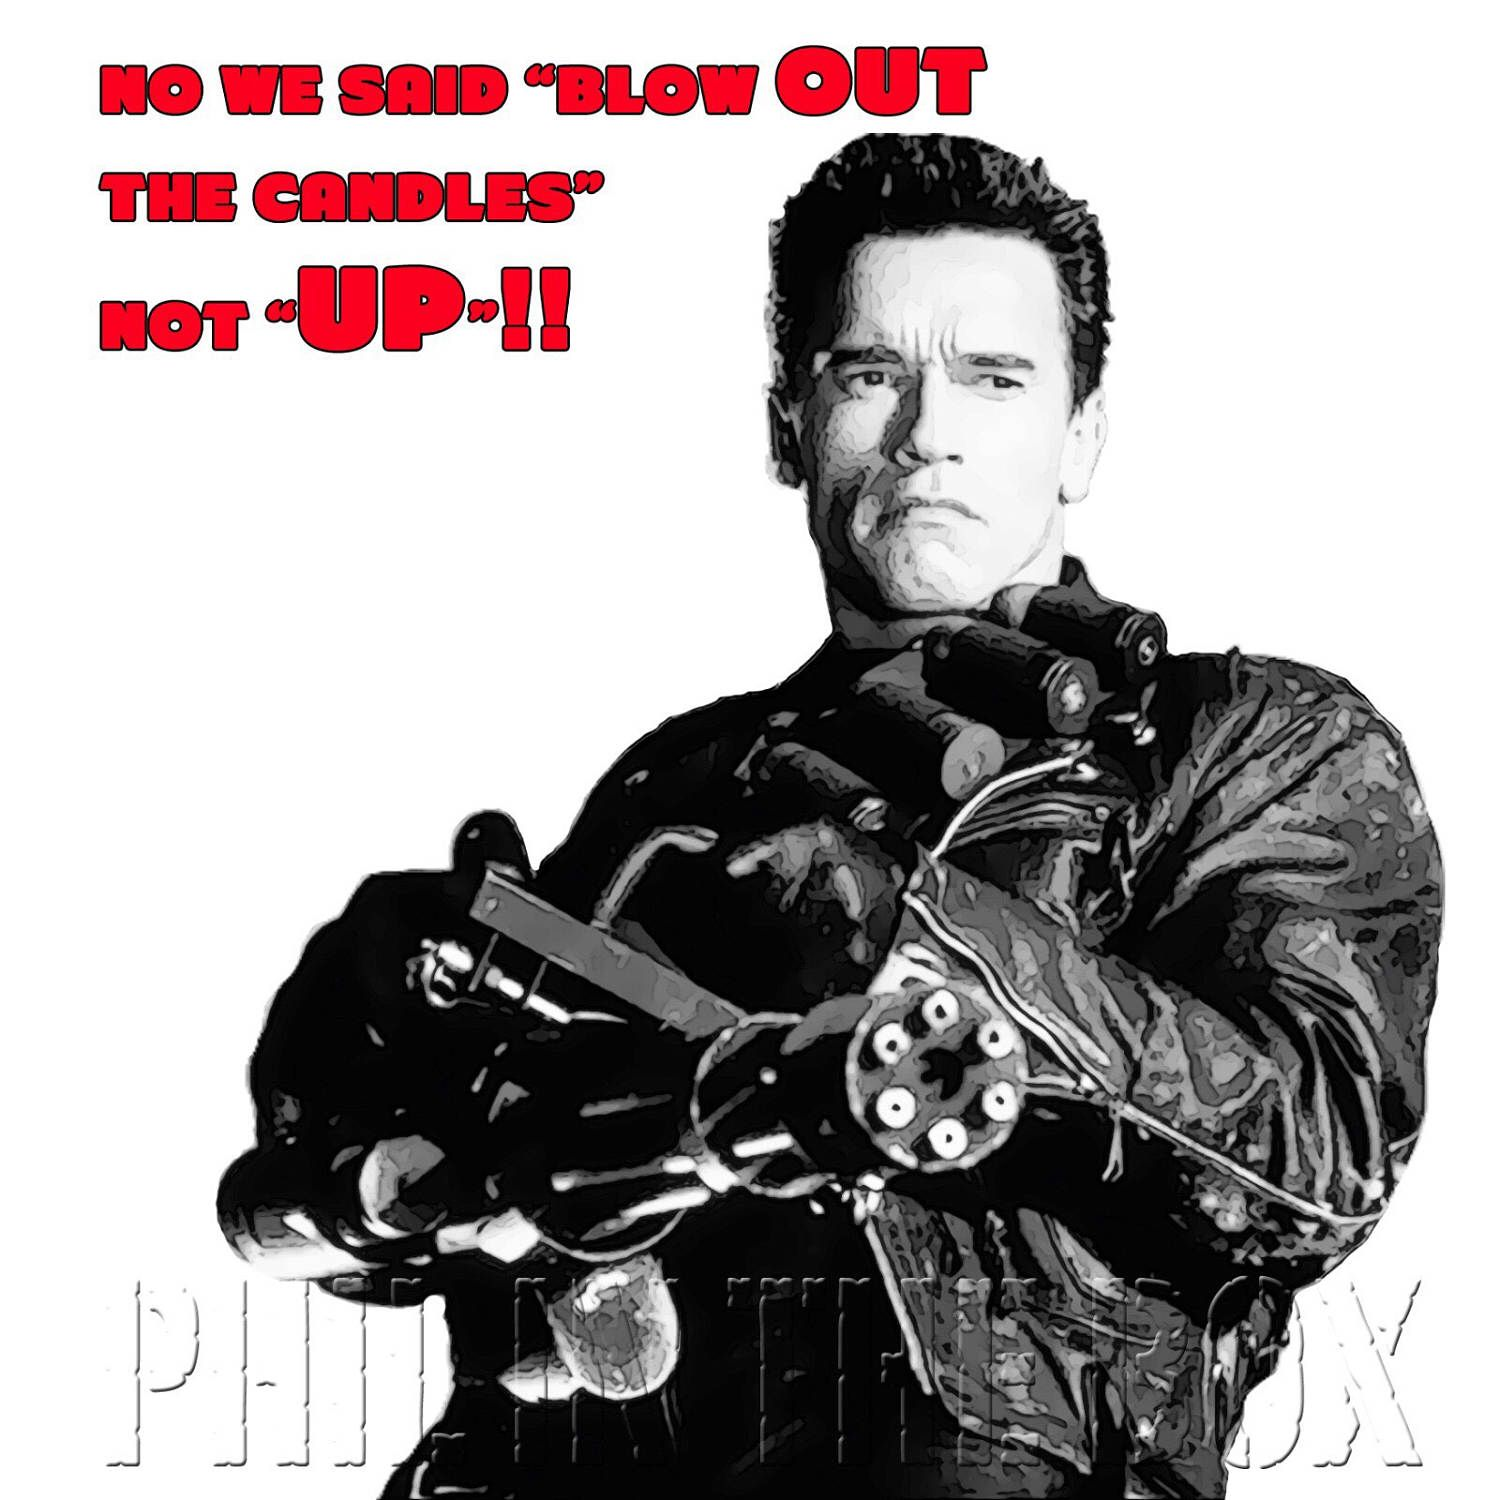 Arnie birthday card arnold schwarzenegger card movie themed items similar to arnie birthday card arnold schwarzenegger card movie themed birthday card terminator birthday card card for movie fan funny card on bookmarktalkfo Image collections